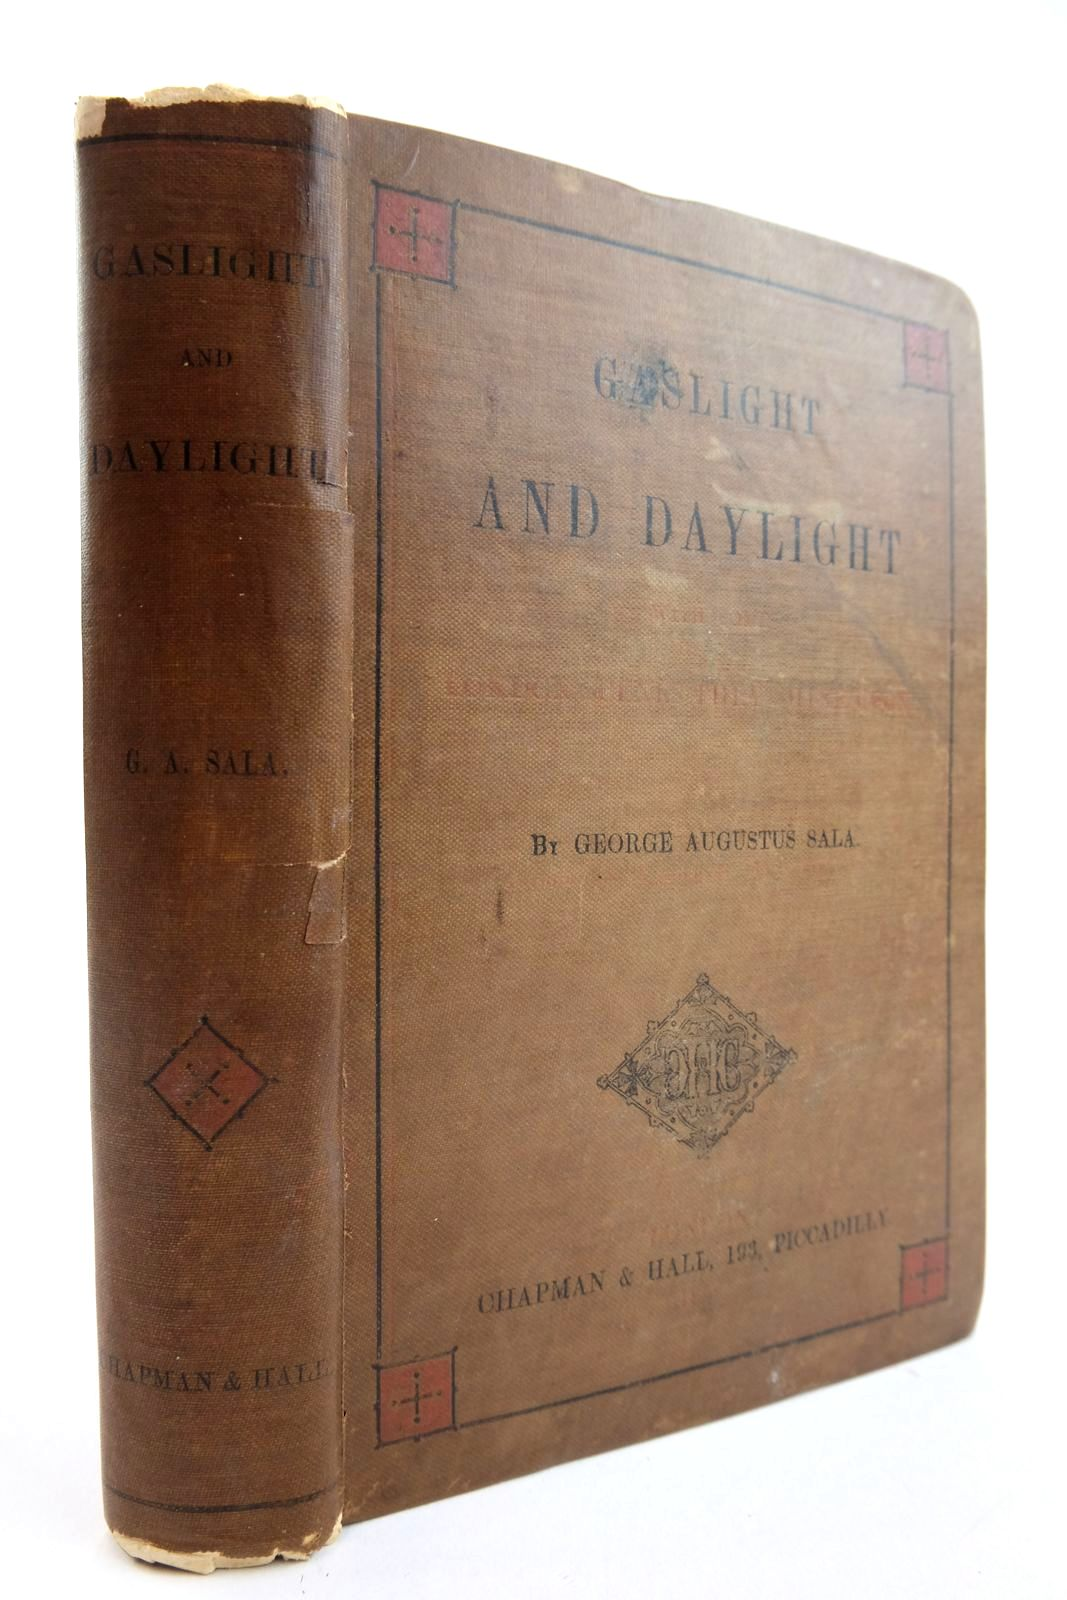 Photo of GASLIGHT AND DAYLIGHT, WITH SOME LONDON SCENES THEY SHINE UPON- Stock Number: 2134130